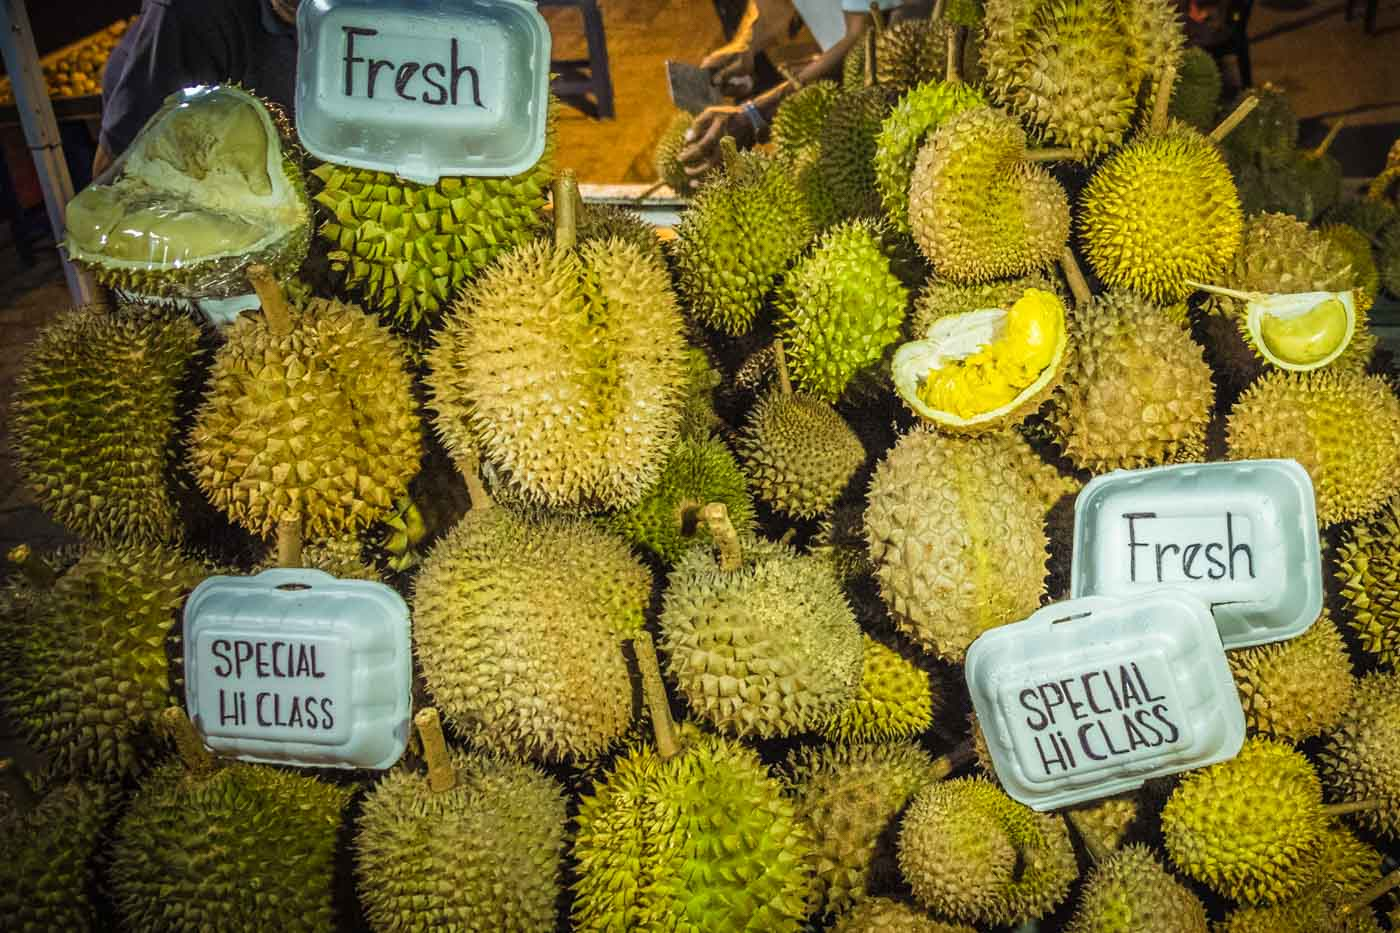 Things To Do in Kota Kinabalu: a City of Seafood, Beaches and Durian